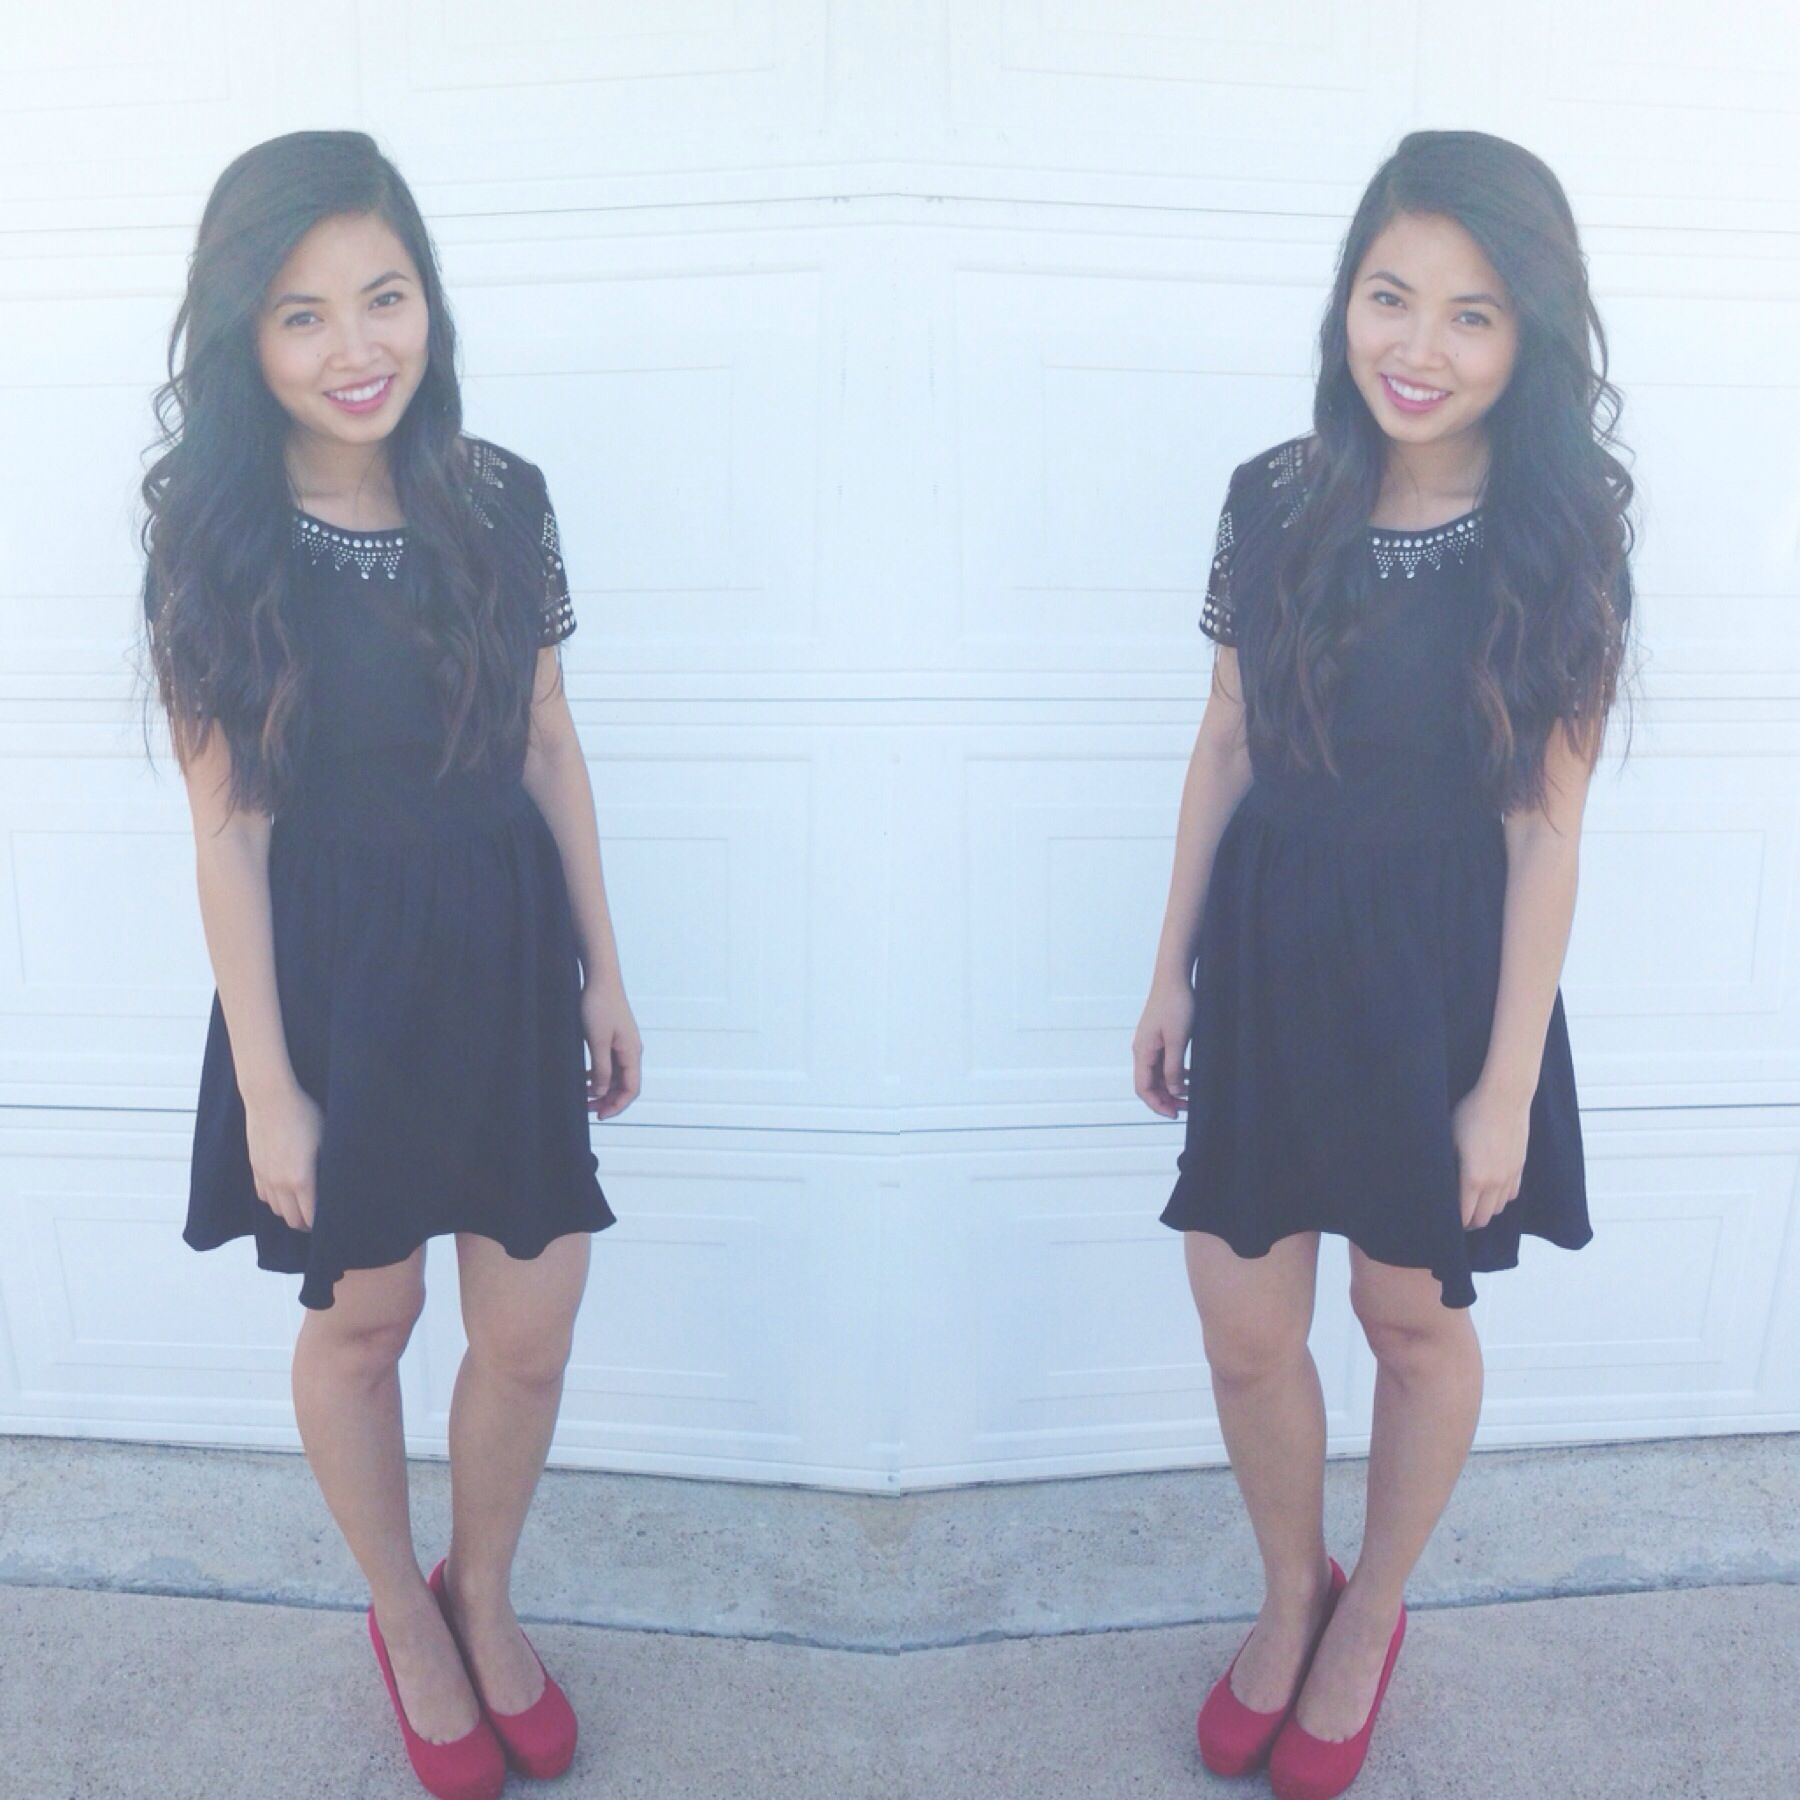 Little Black Dress Outfit Ootd Red Wedges Little Black Dress Outfits Fashion [ 1800 x 1800 Pixel ]